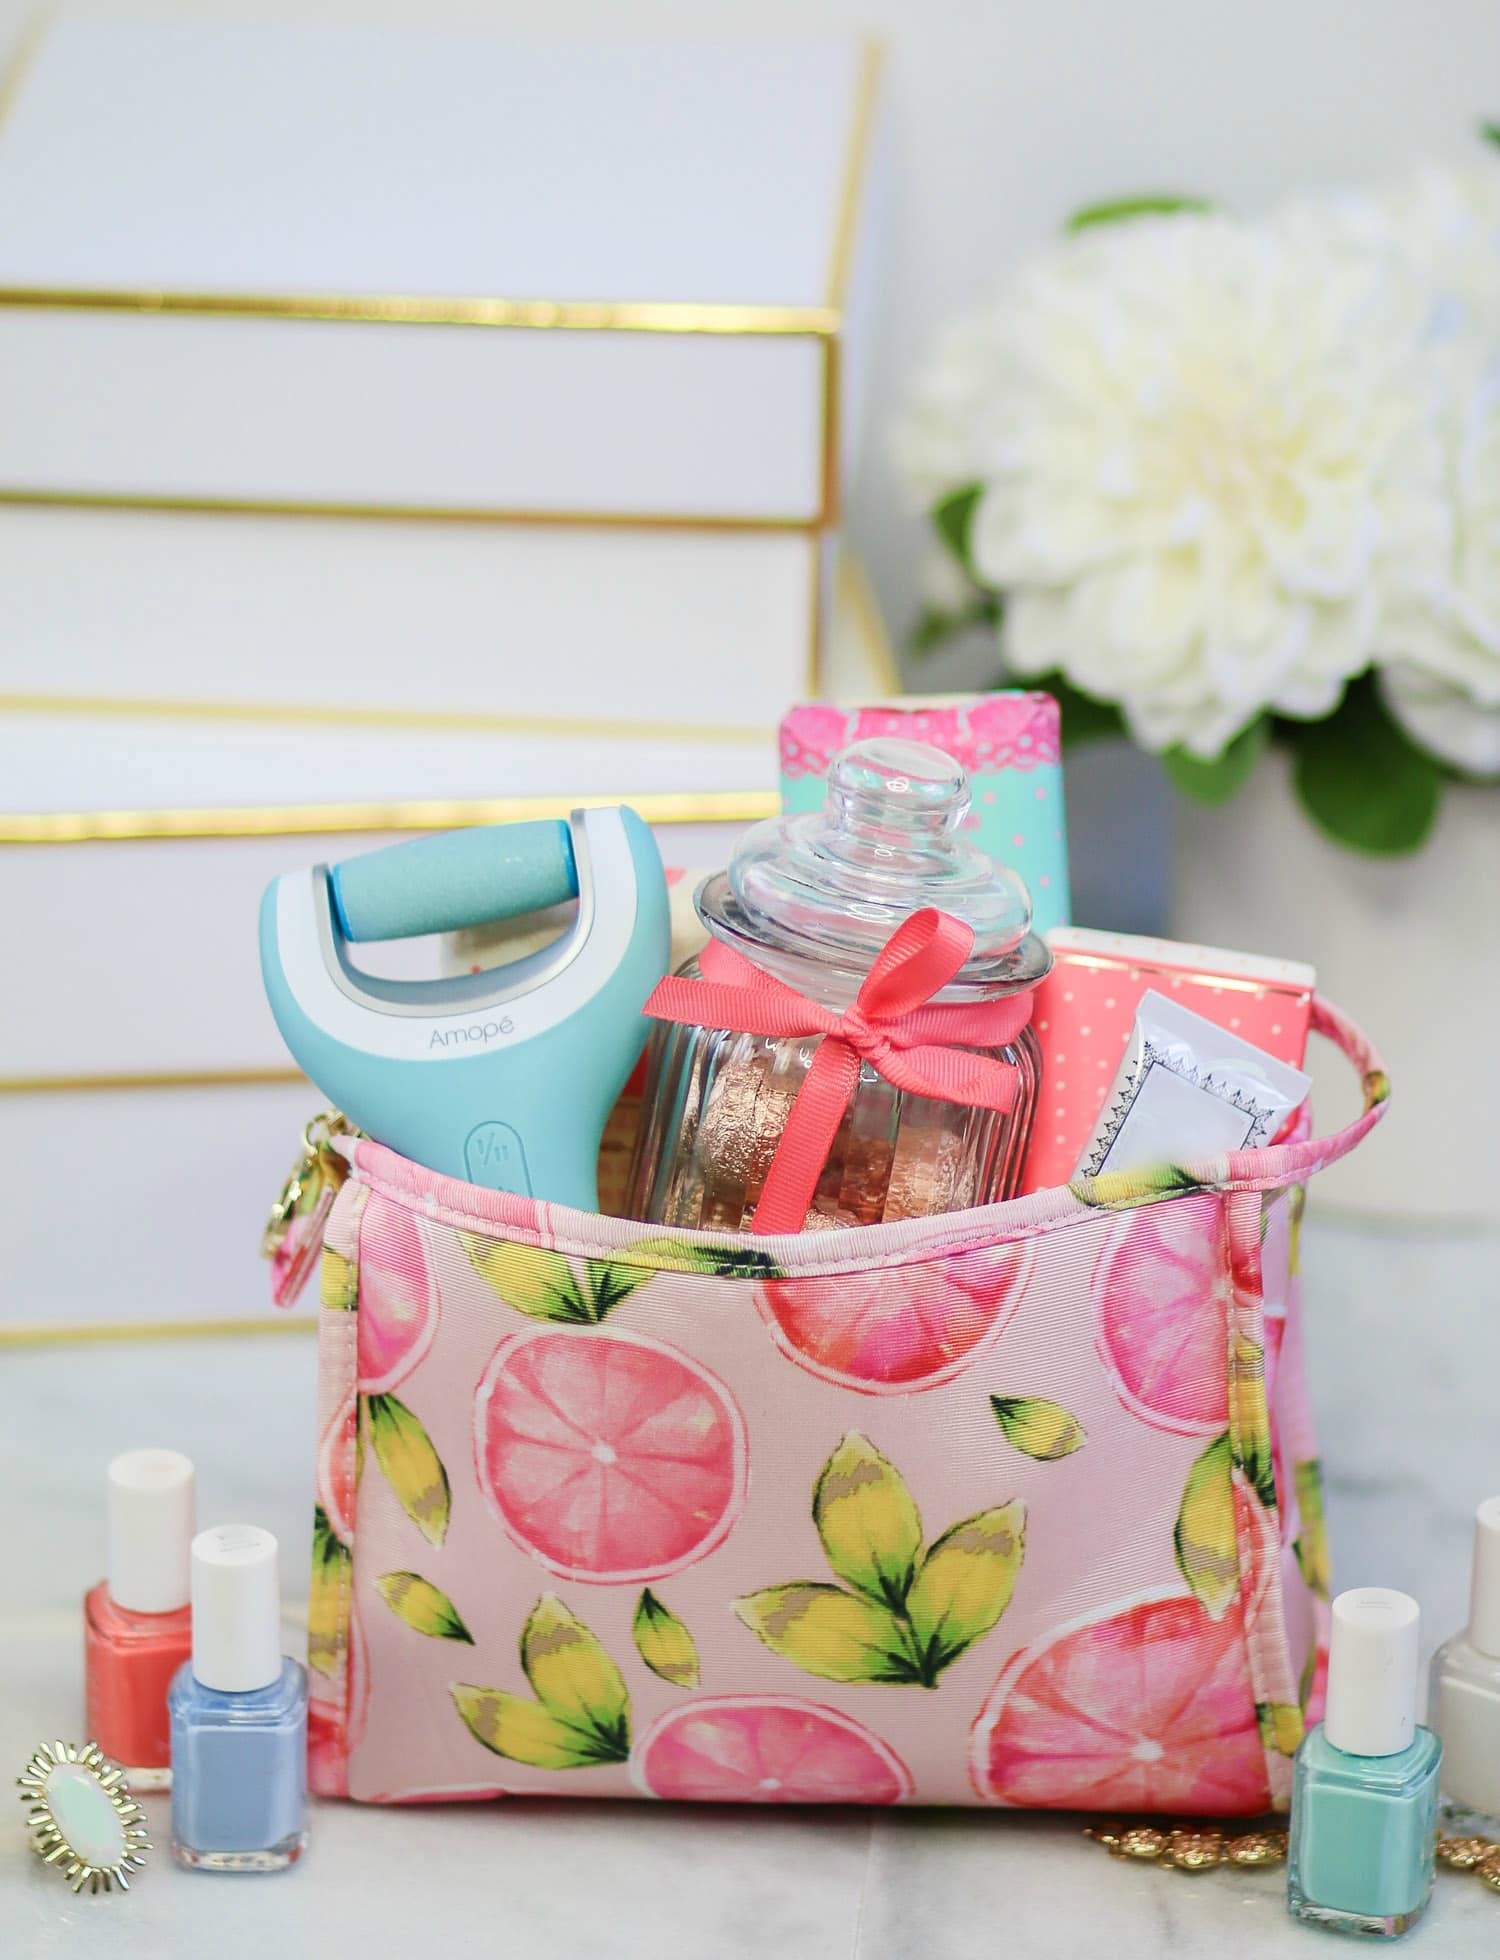 Need a gift idea for the girly girl in your life? I'm sharing two easy DIY gifts featuring the best summer beauty essentials from @target ! that are guaranteed to put a smile on her face! Click through this pin to see both gift ideas from Ashley Brooke Nicholas! #doyouamope sponsored by Amopé